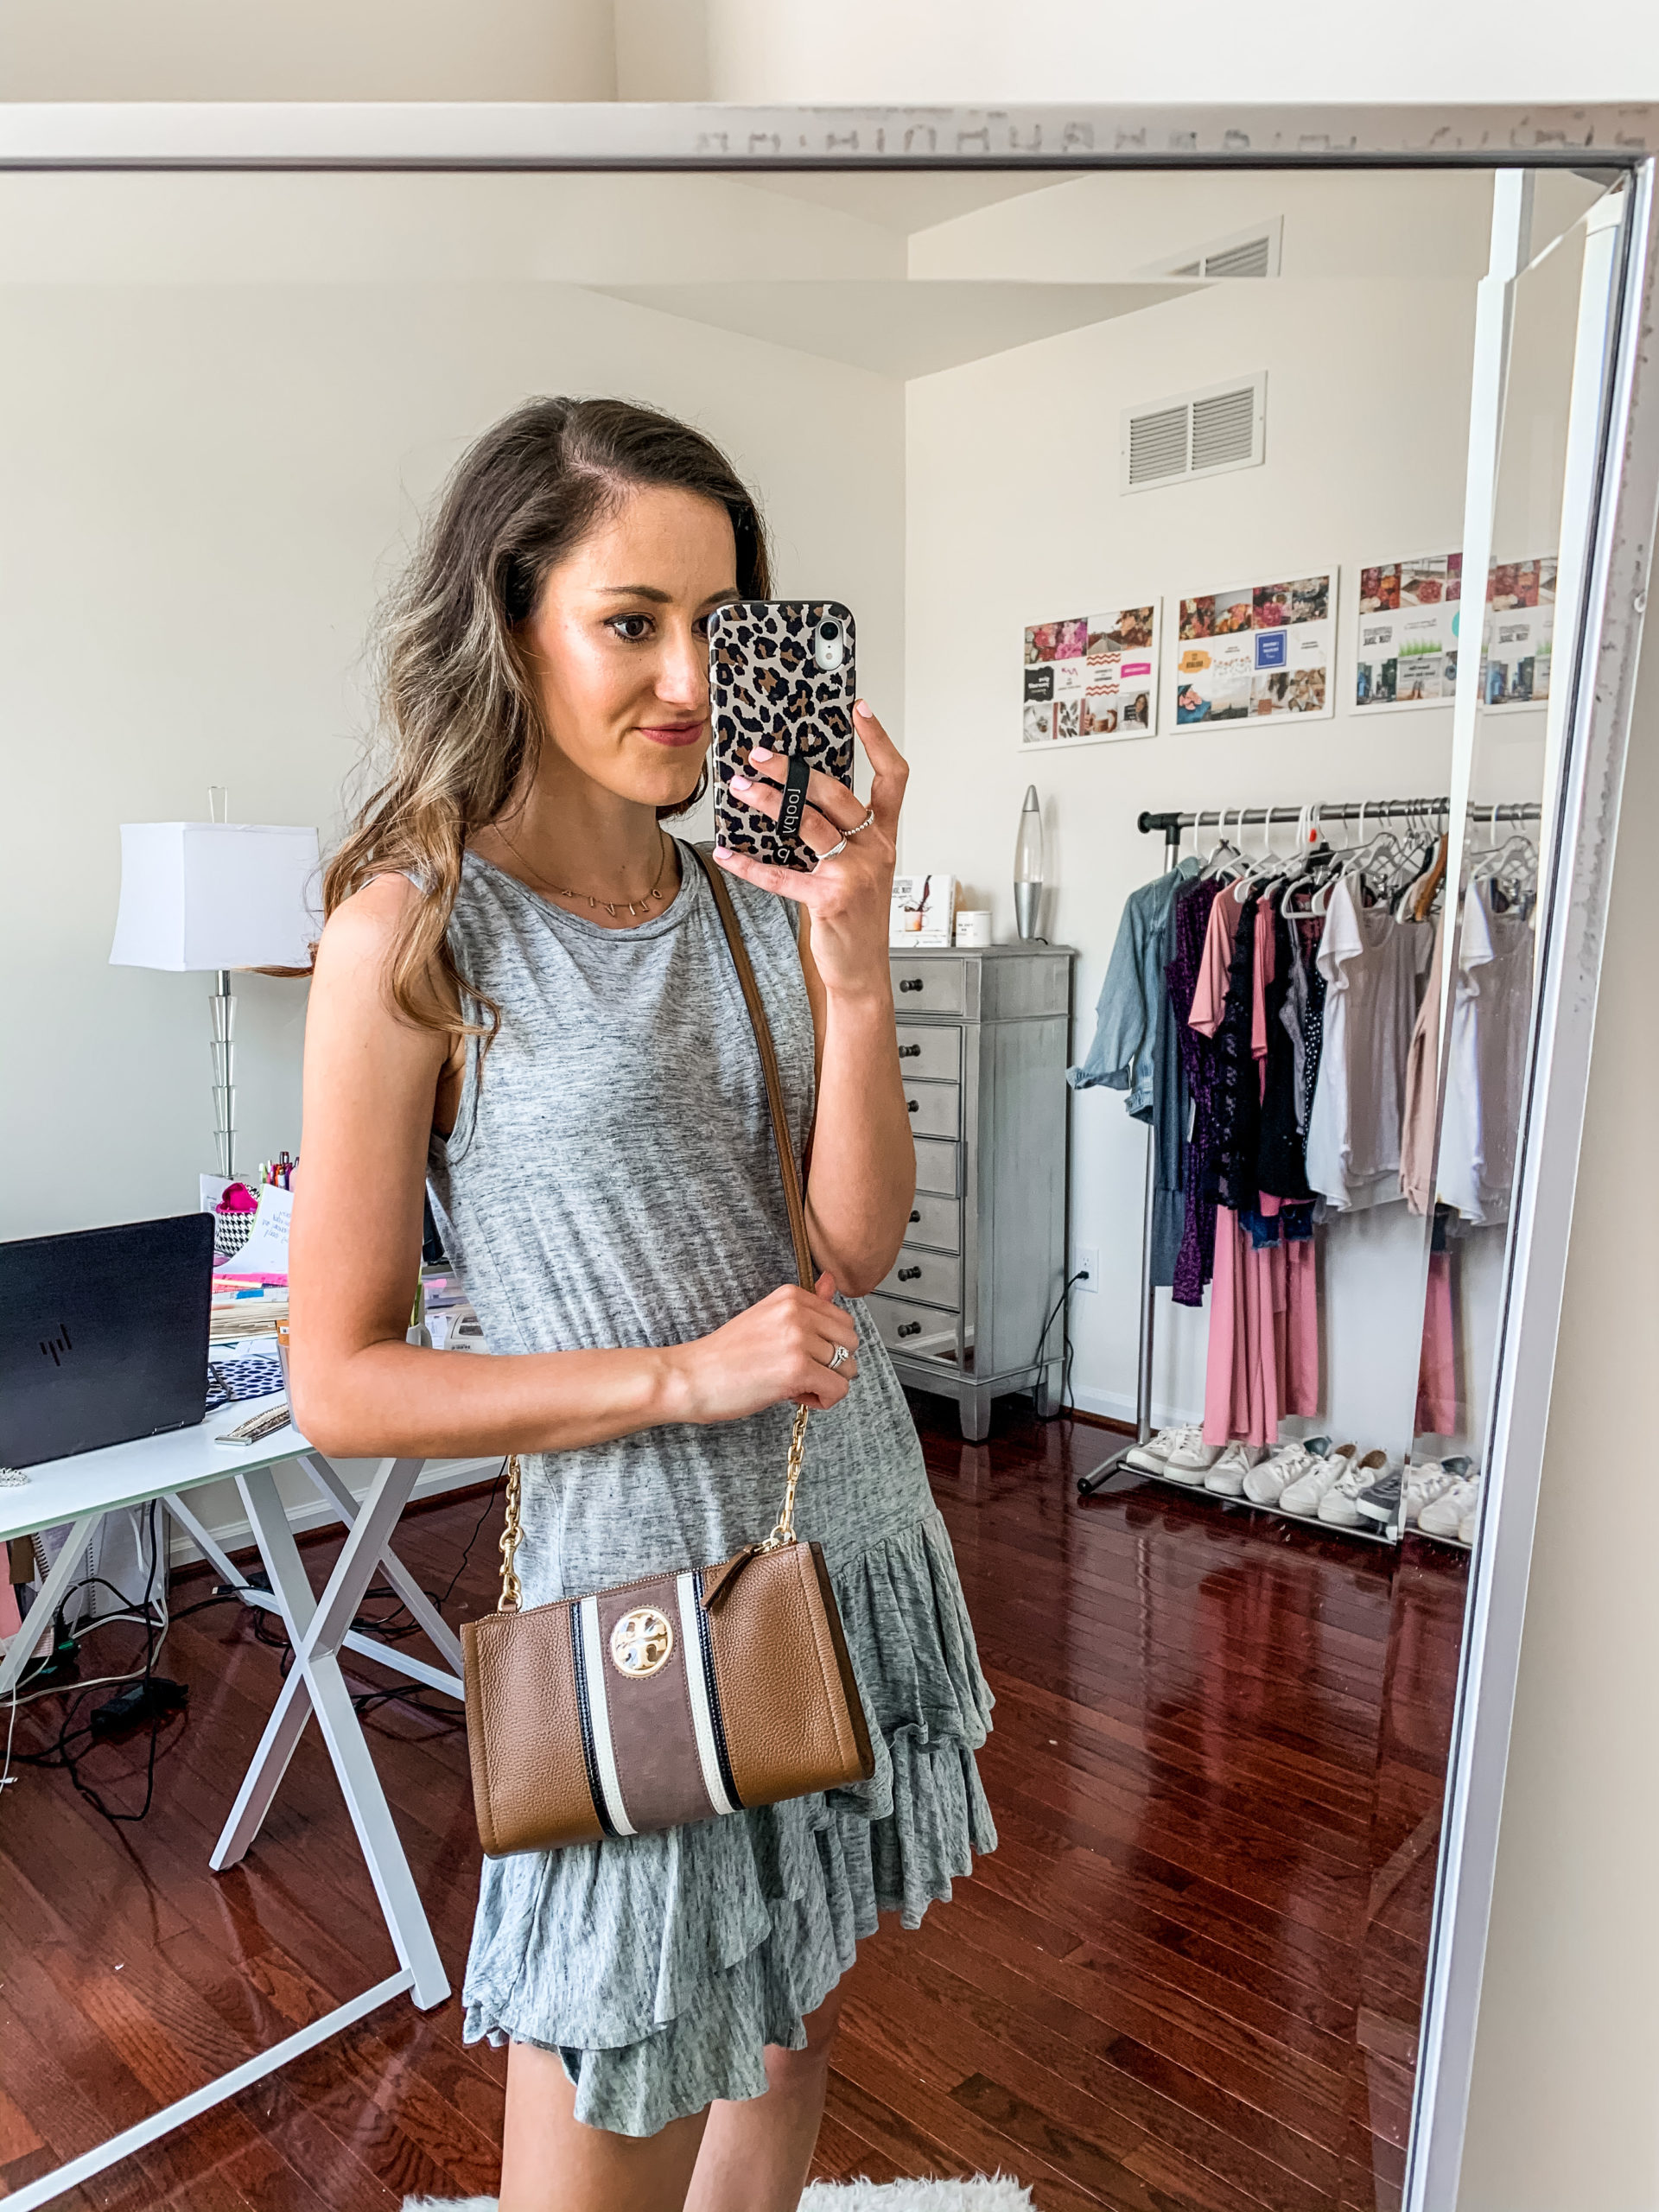 tory burch crossbody bag - NORDSTROM ANNIVERSARY SALE - Try-on Haul with Hits AND MISSES on Coming Up Roses